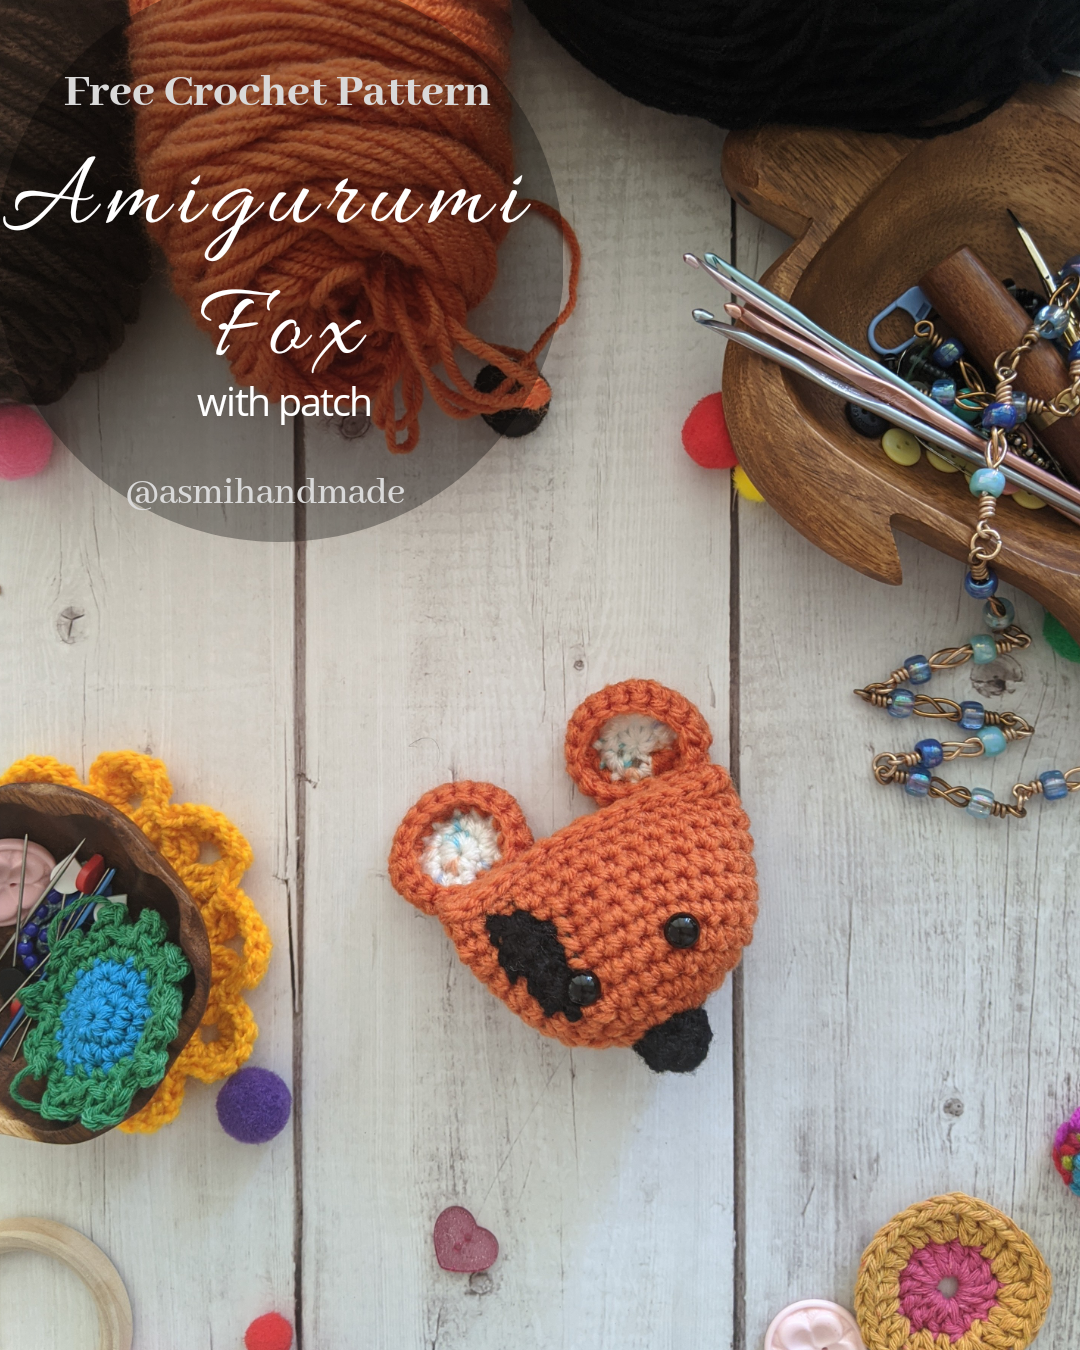 5-Way Jointed Amigurumi Fox - Crochet Pattern by Kristi Tullus ... | 1350x1080